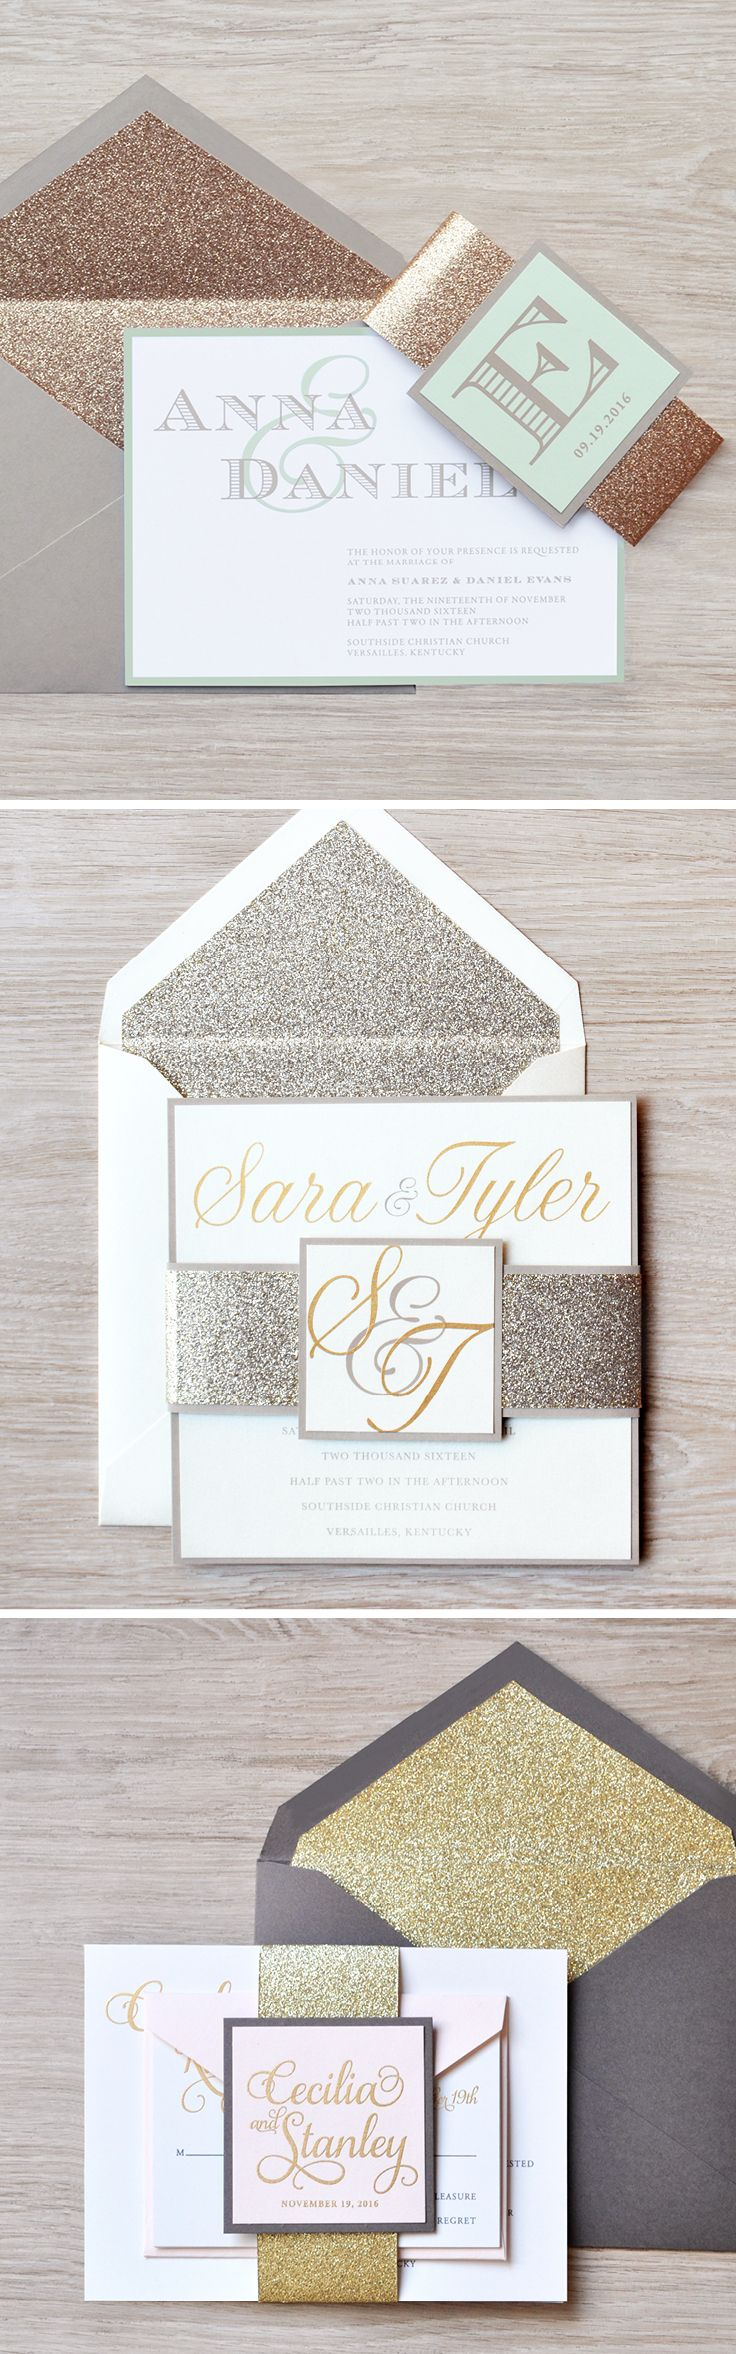 216 Best Wedding Stationery Invitation Ideas Images On Pinterest